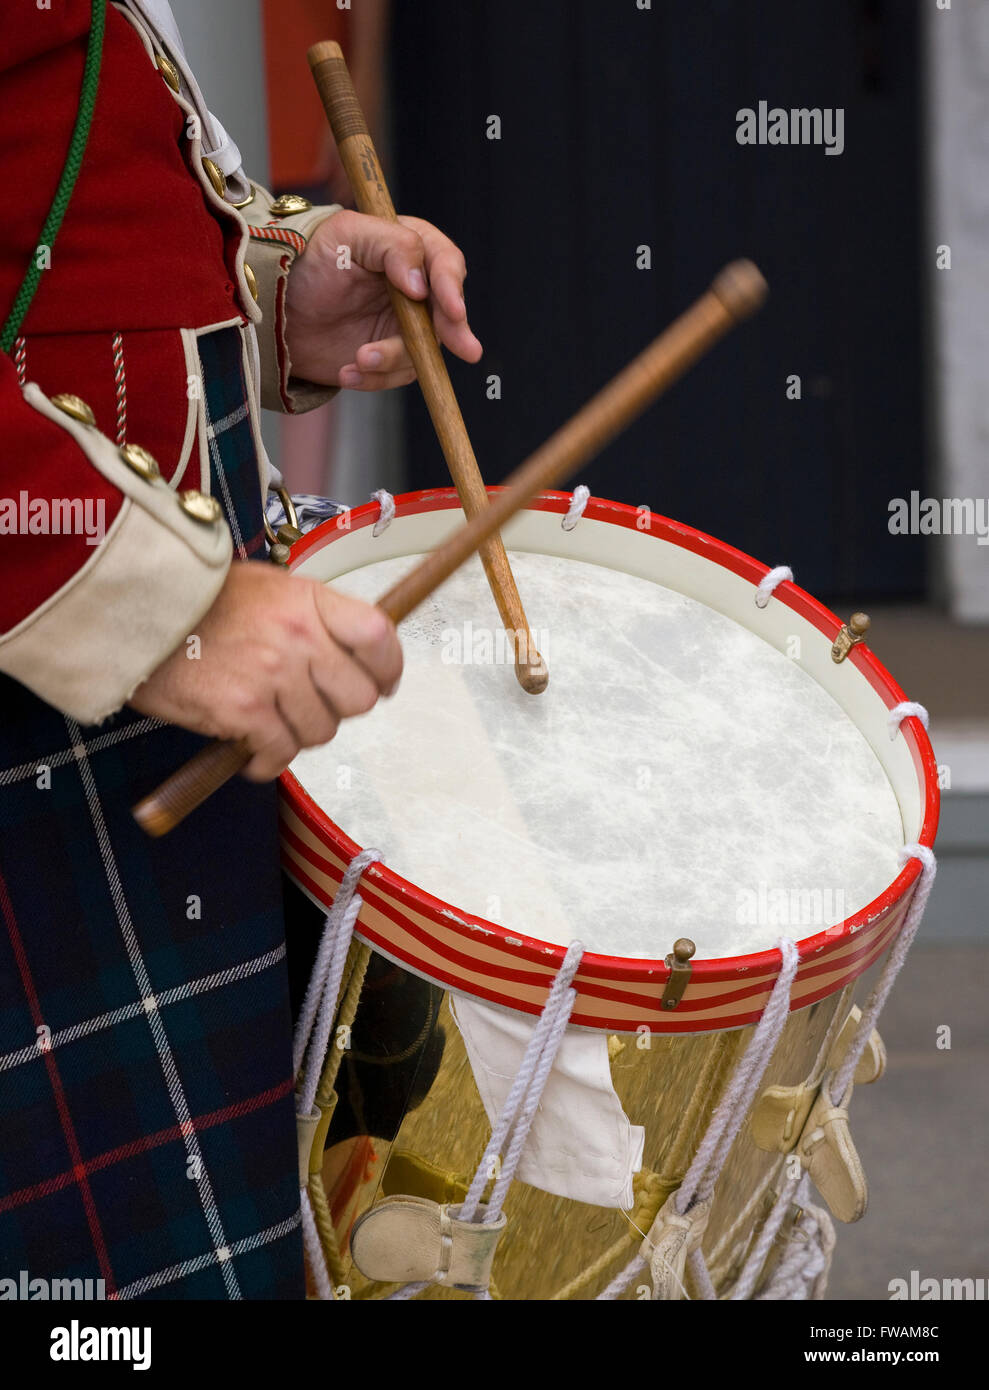 Military Snare Drum Stock Photos Images Photography For Diagram Image